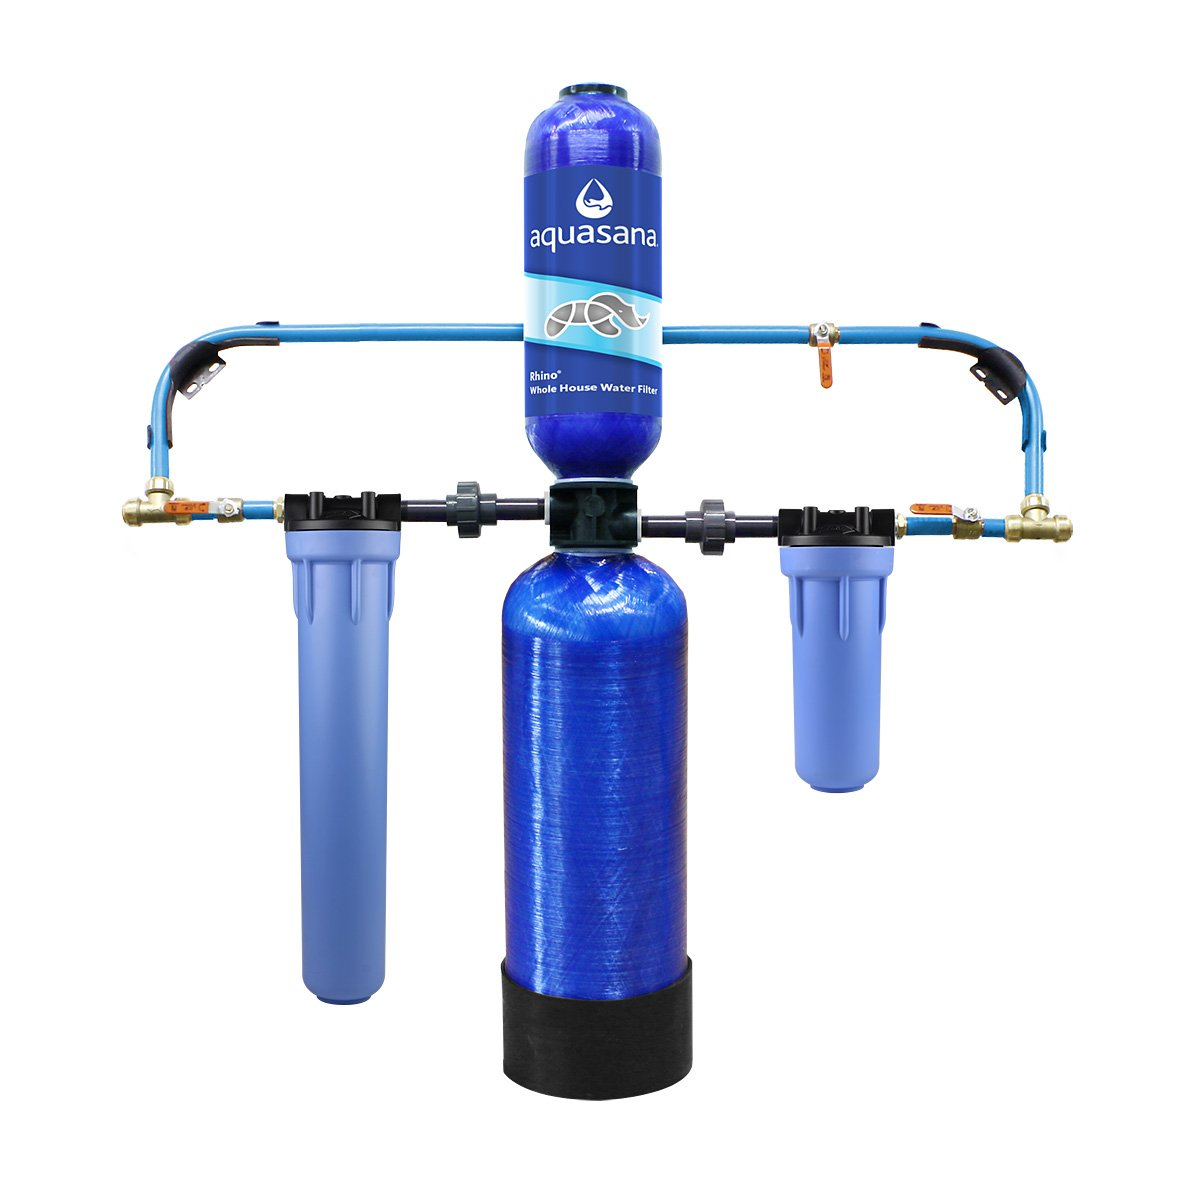 Waterfilter Aquasana 10 Year 1 000 000 Gallon Whole House Water Filter With